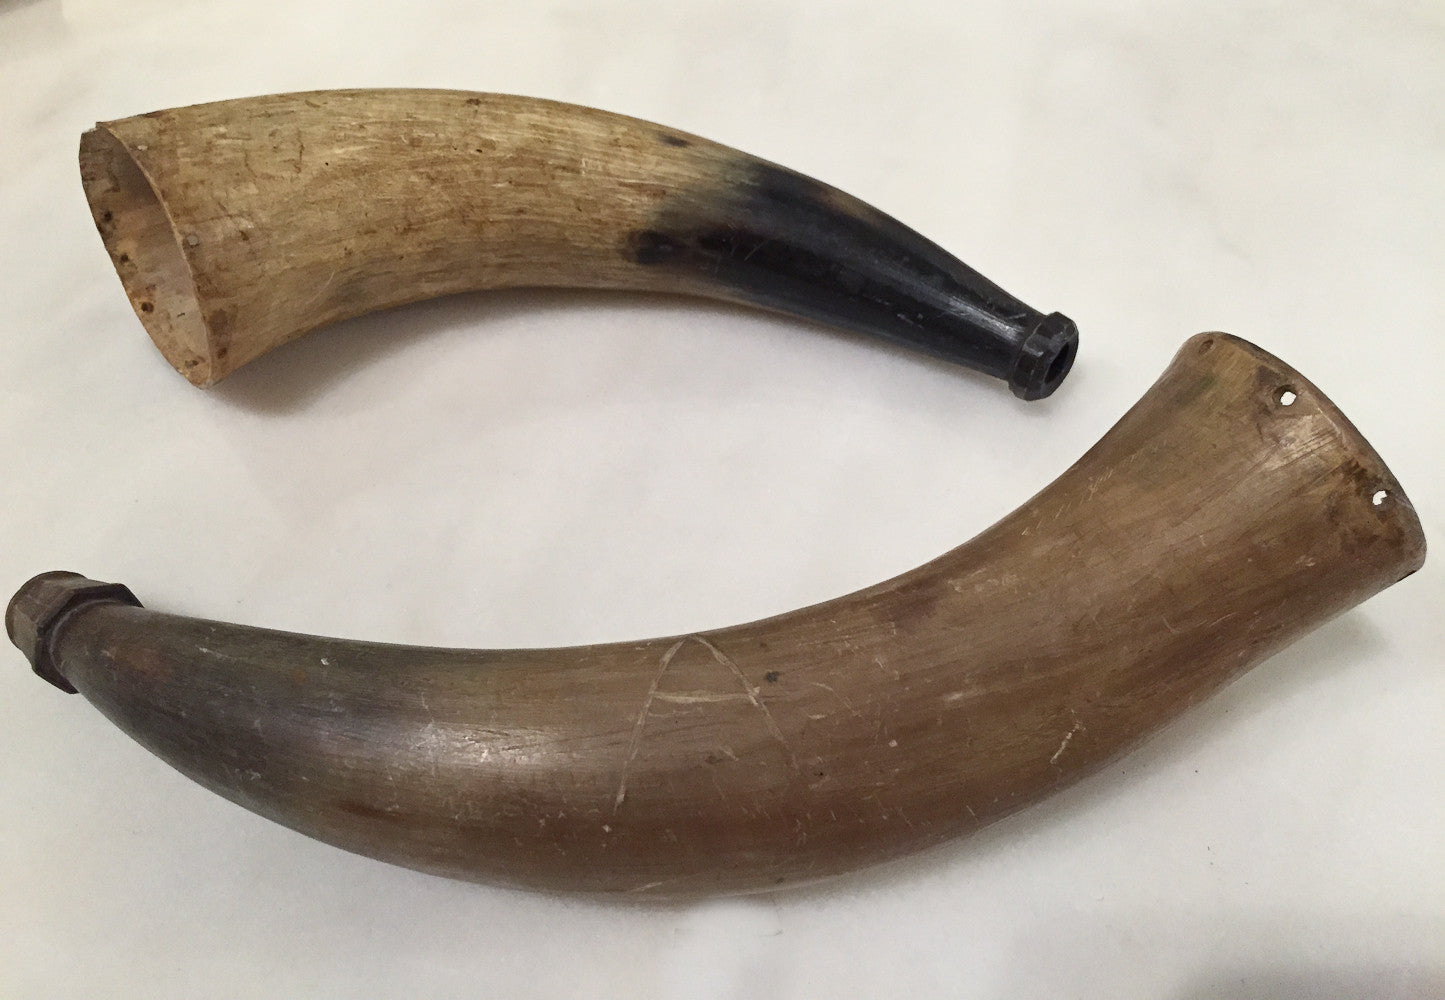 Pair, Antique Pre Civial War era Bull Horn Musket Powder Holder